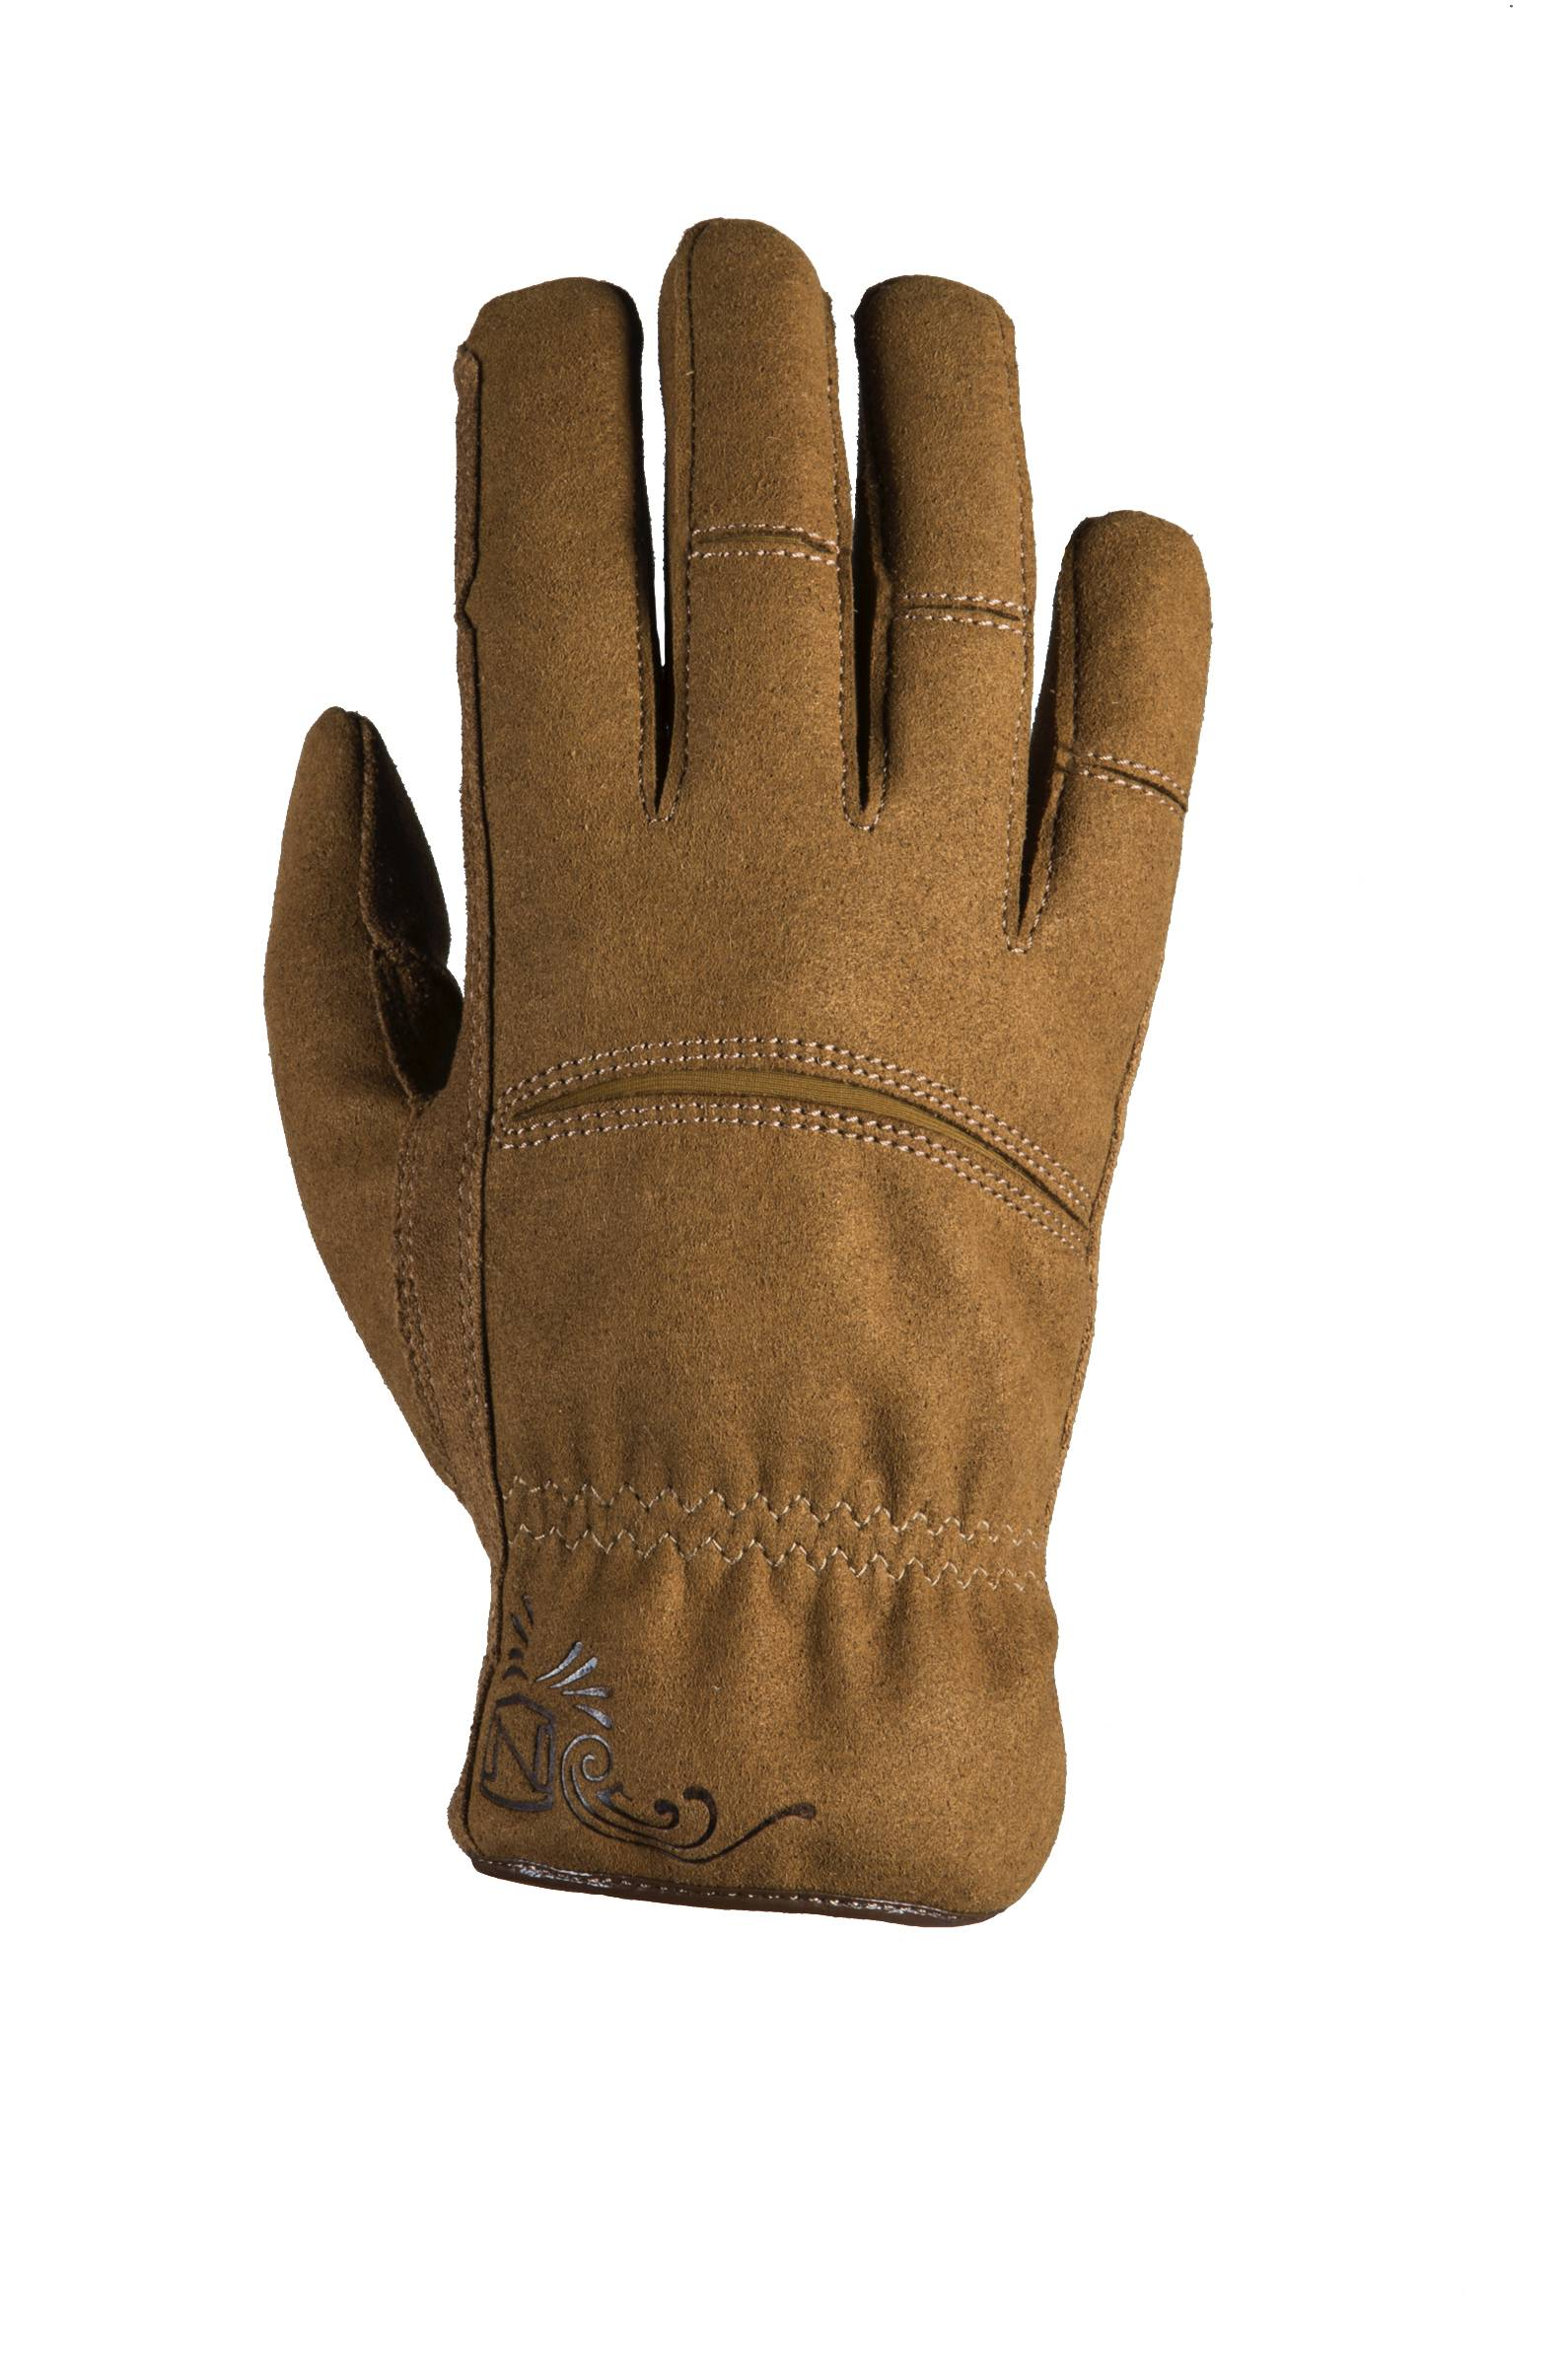 Noble Outfitters Dakota Fleece Lined Glove - Ladies